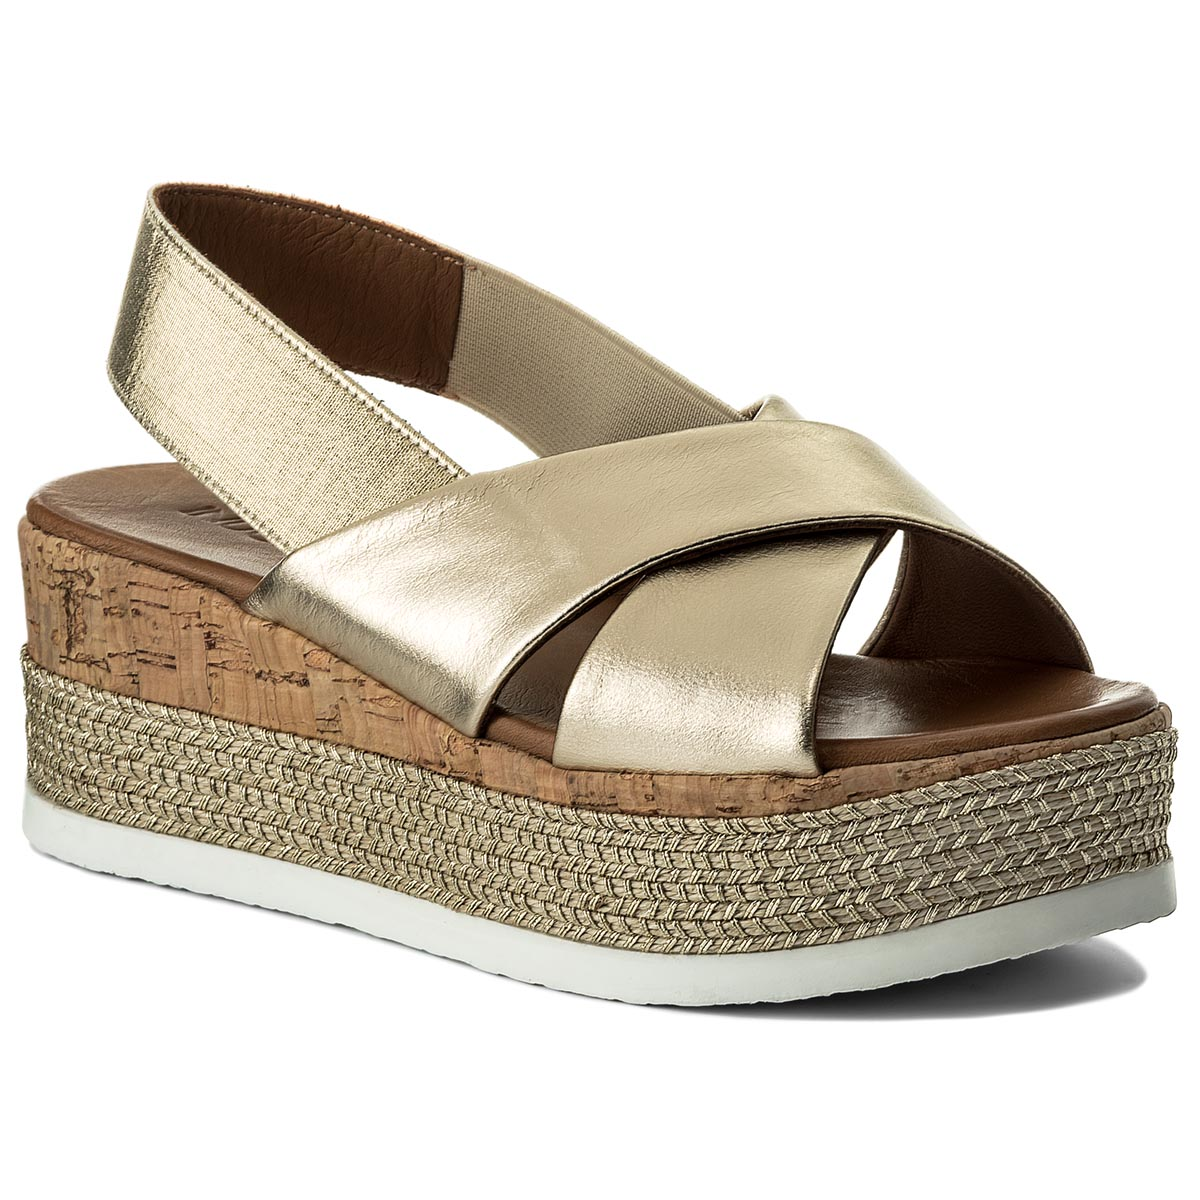 Espadrile INUOVO - 8761 Gold/Gold